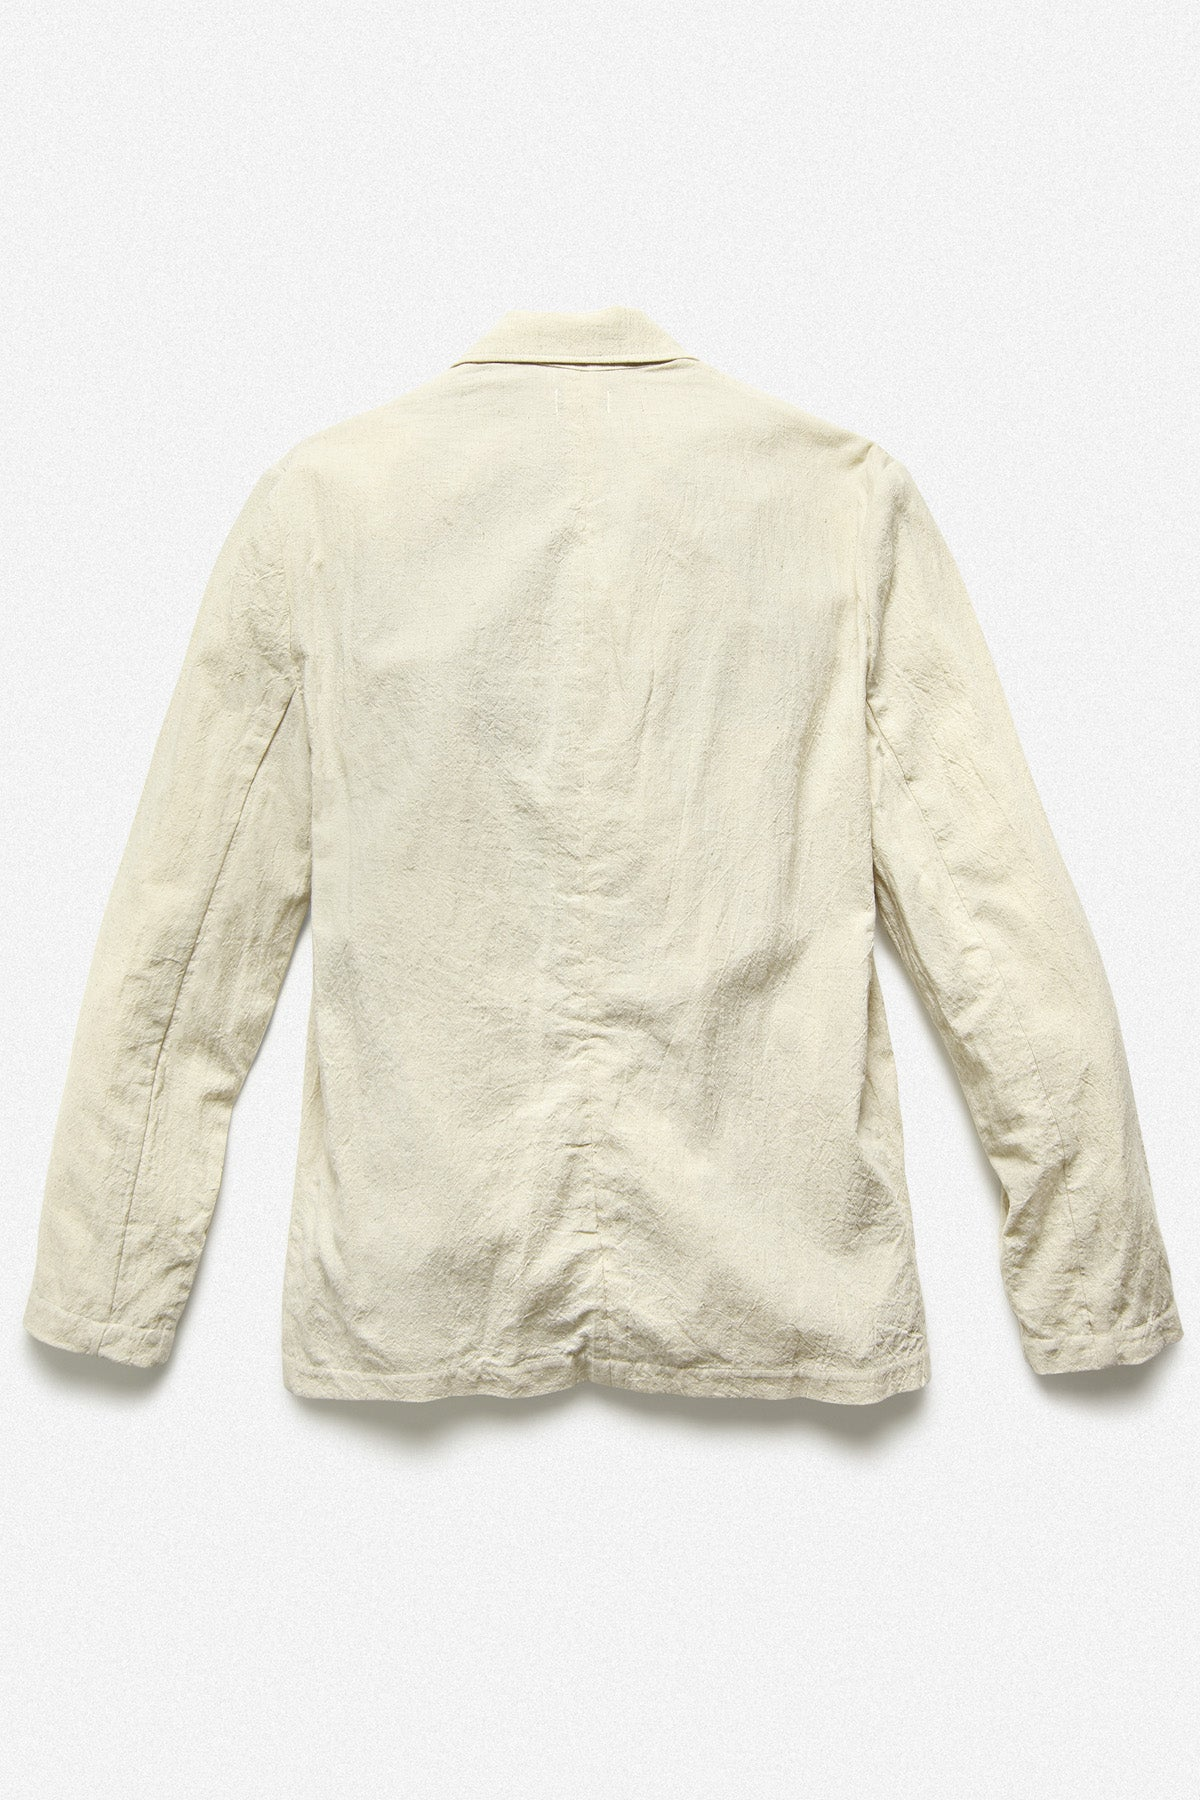 RUM JACKET IN NATURAL - Fortune Goods